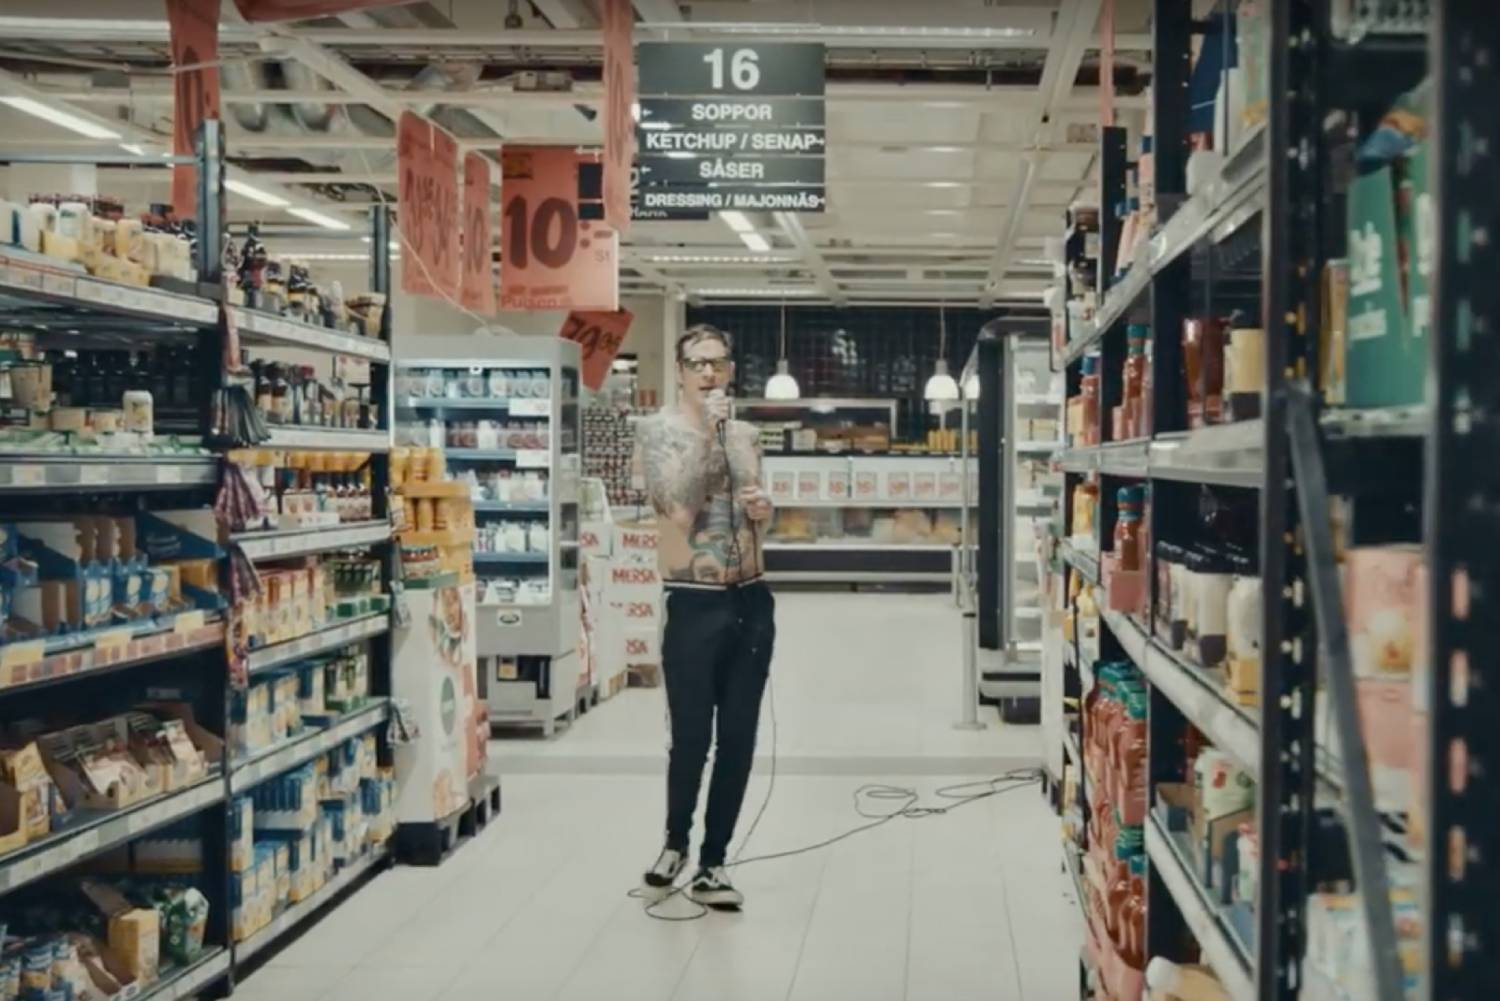 Viagra Boys head to the supermarket in new video for 'Just Like You'